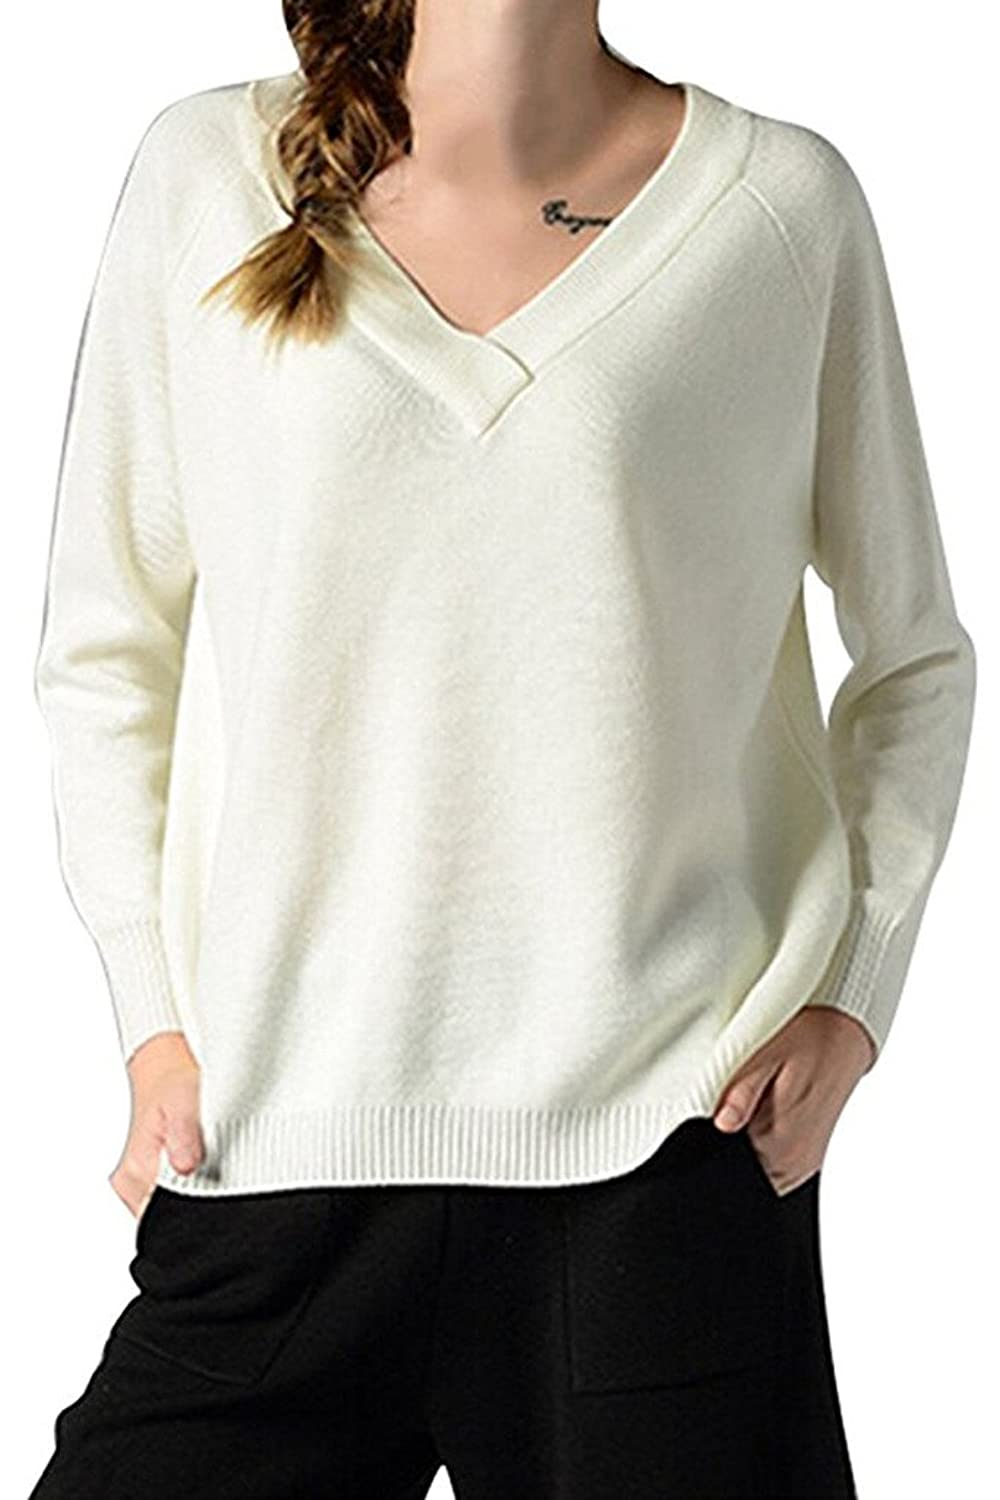 Wowforu Women's V Neck Long Sleeve Slouchy Loose Sweater Pullover Tops